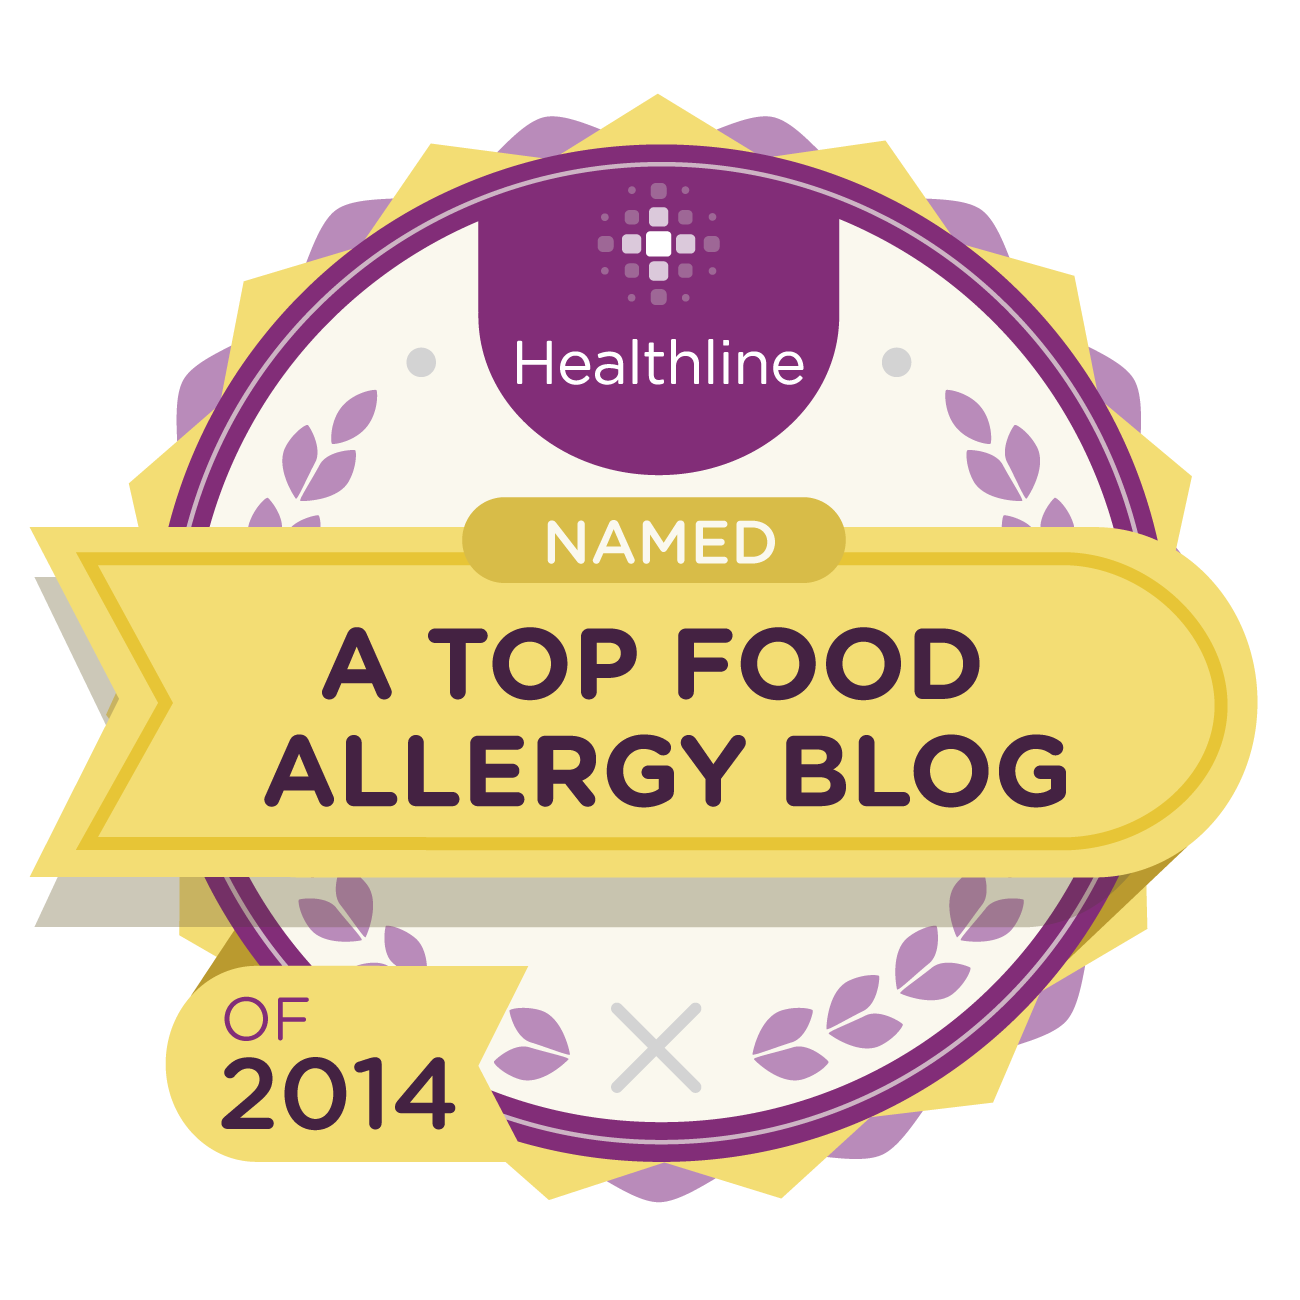 The 16 Best Food Allergy Blogs of 2014